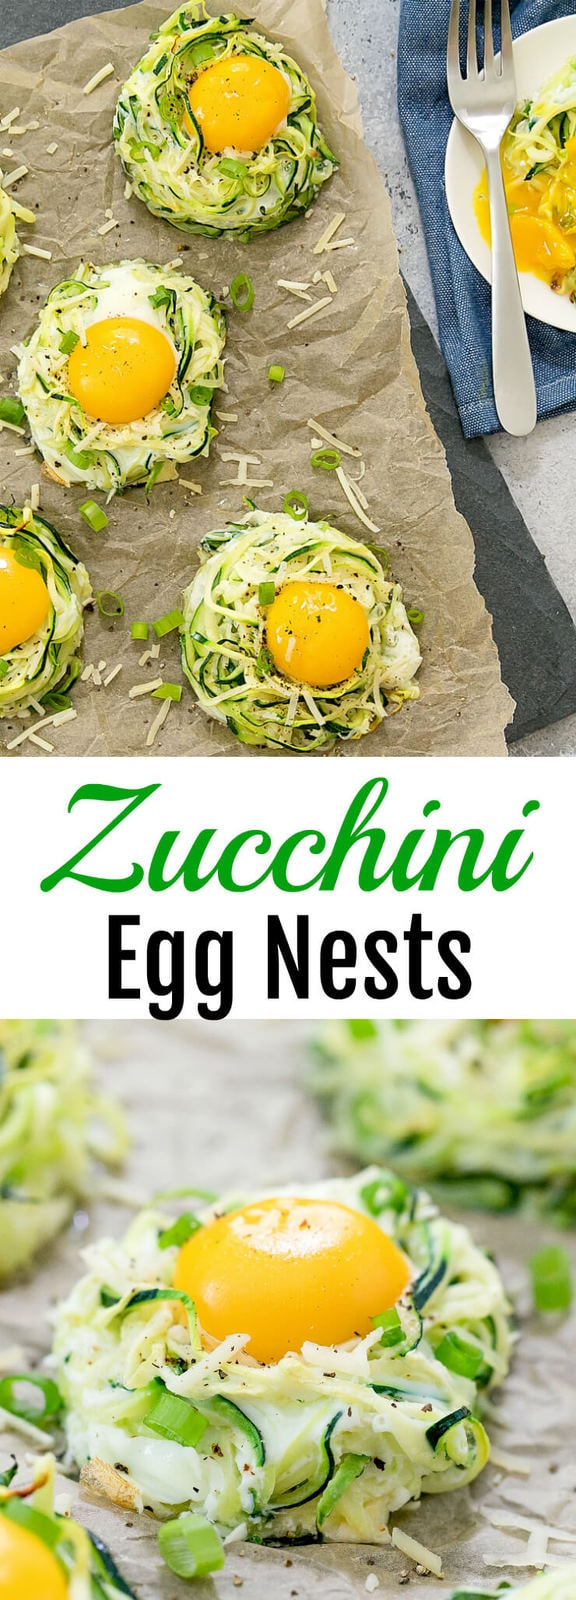 Baked Zucchini Egg Nests. A fun brunch or breakfast and a great low carb alternative to traditional egg nests.